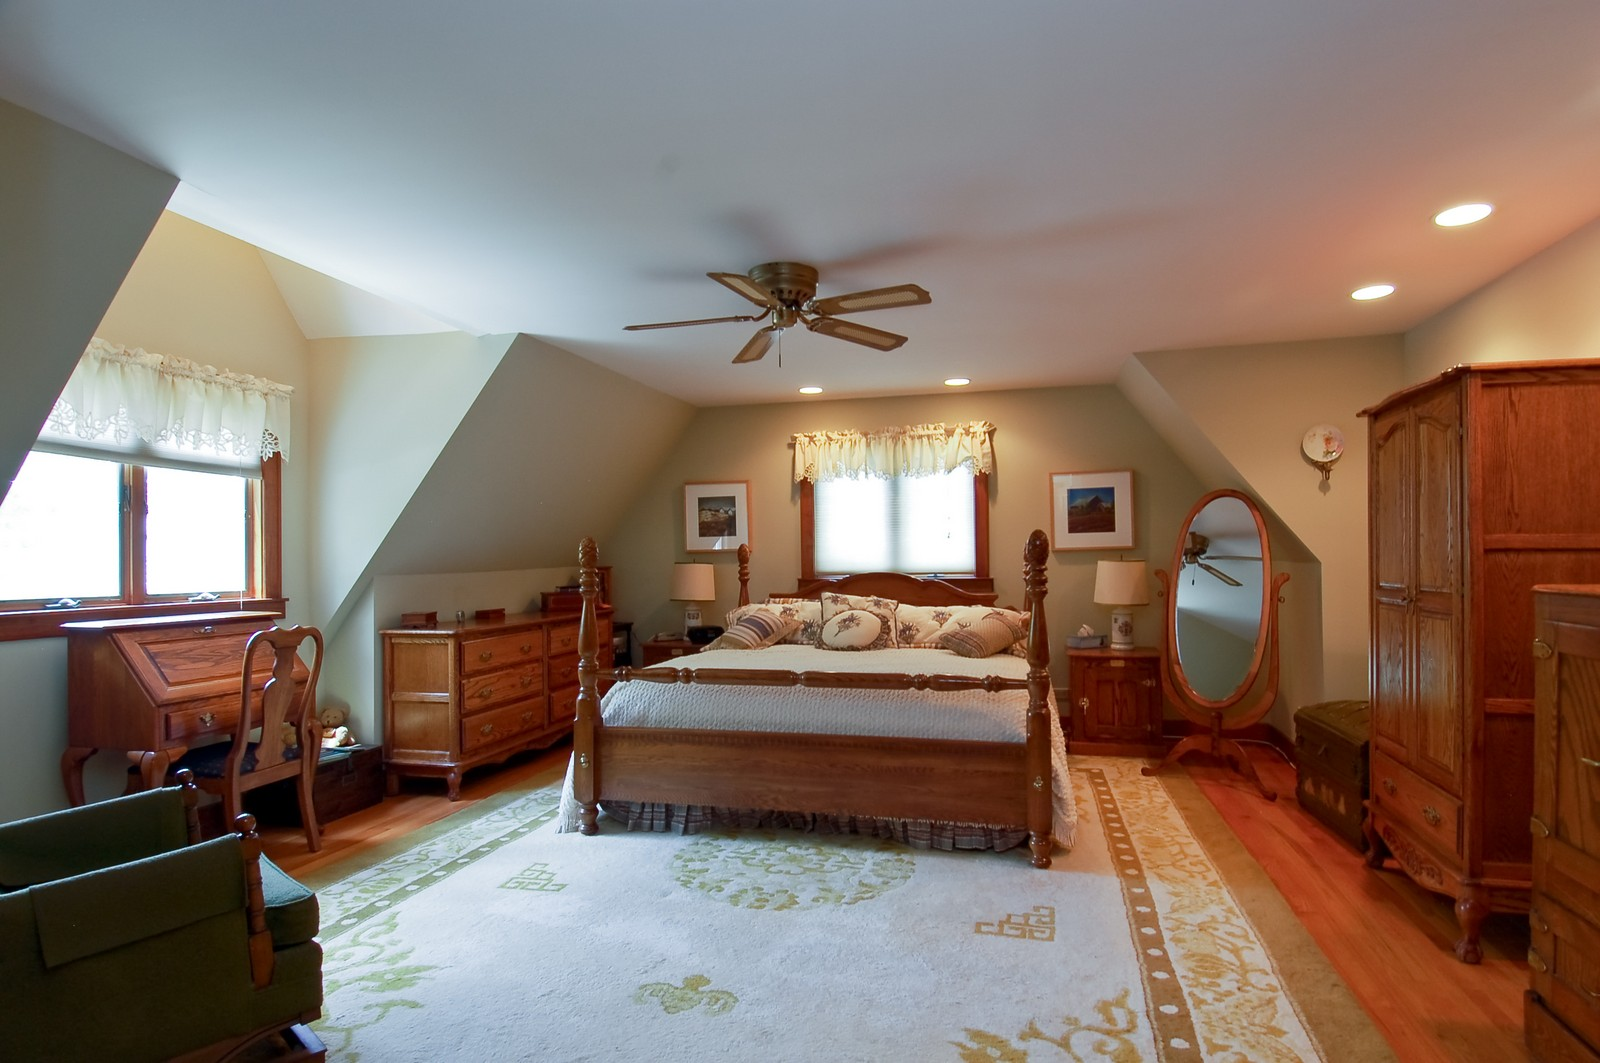 Real Estate Photography - 4325 Central Ave, Western Springs, IL, 60558 - Master Bedroom